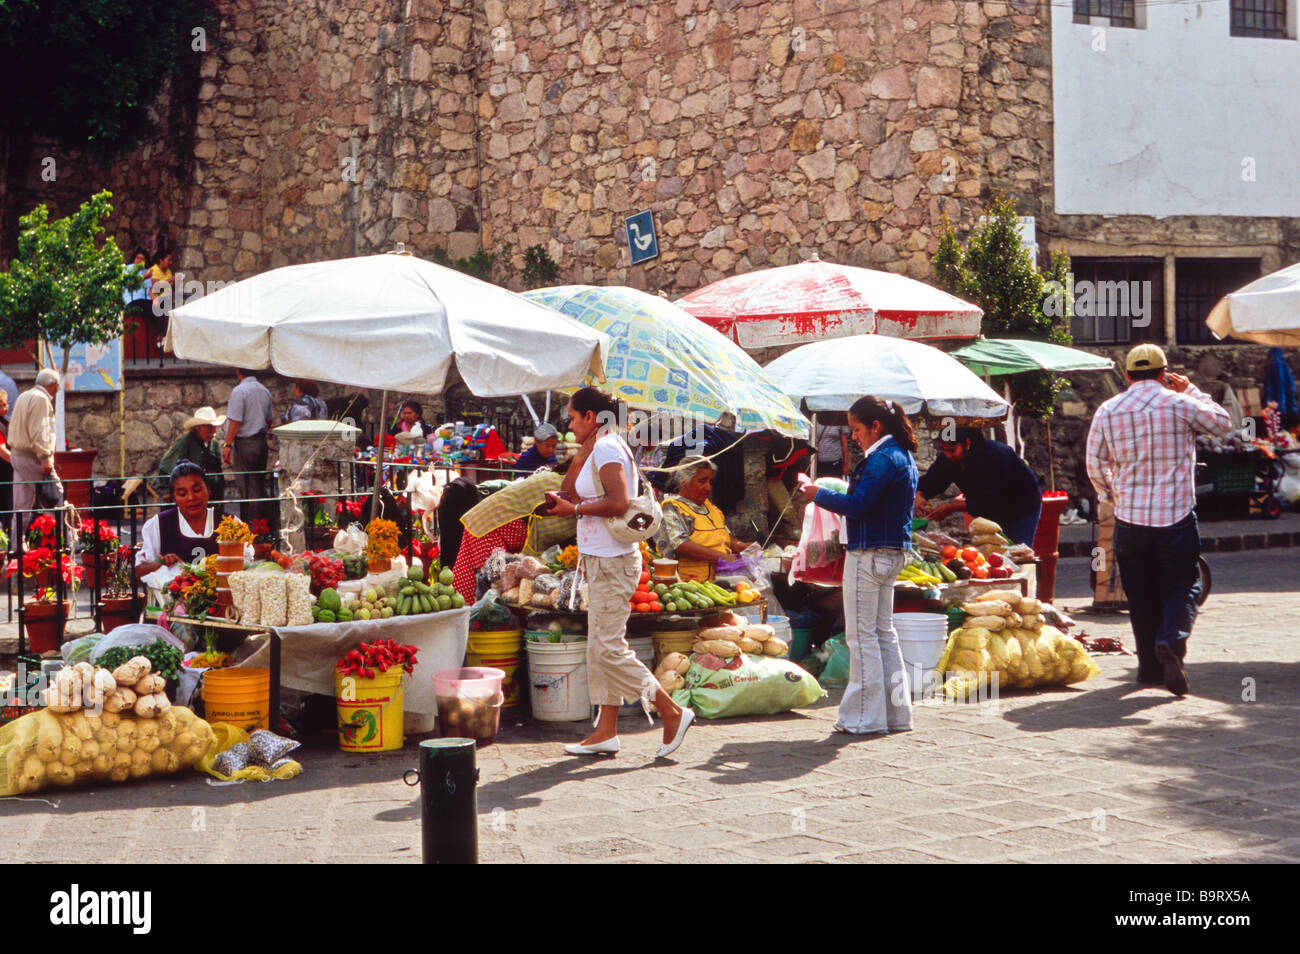 Mexican men and women, at the market, selling vegetables, nuts and fruits on a street in the colonial city of Guanajuato Stock Photo